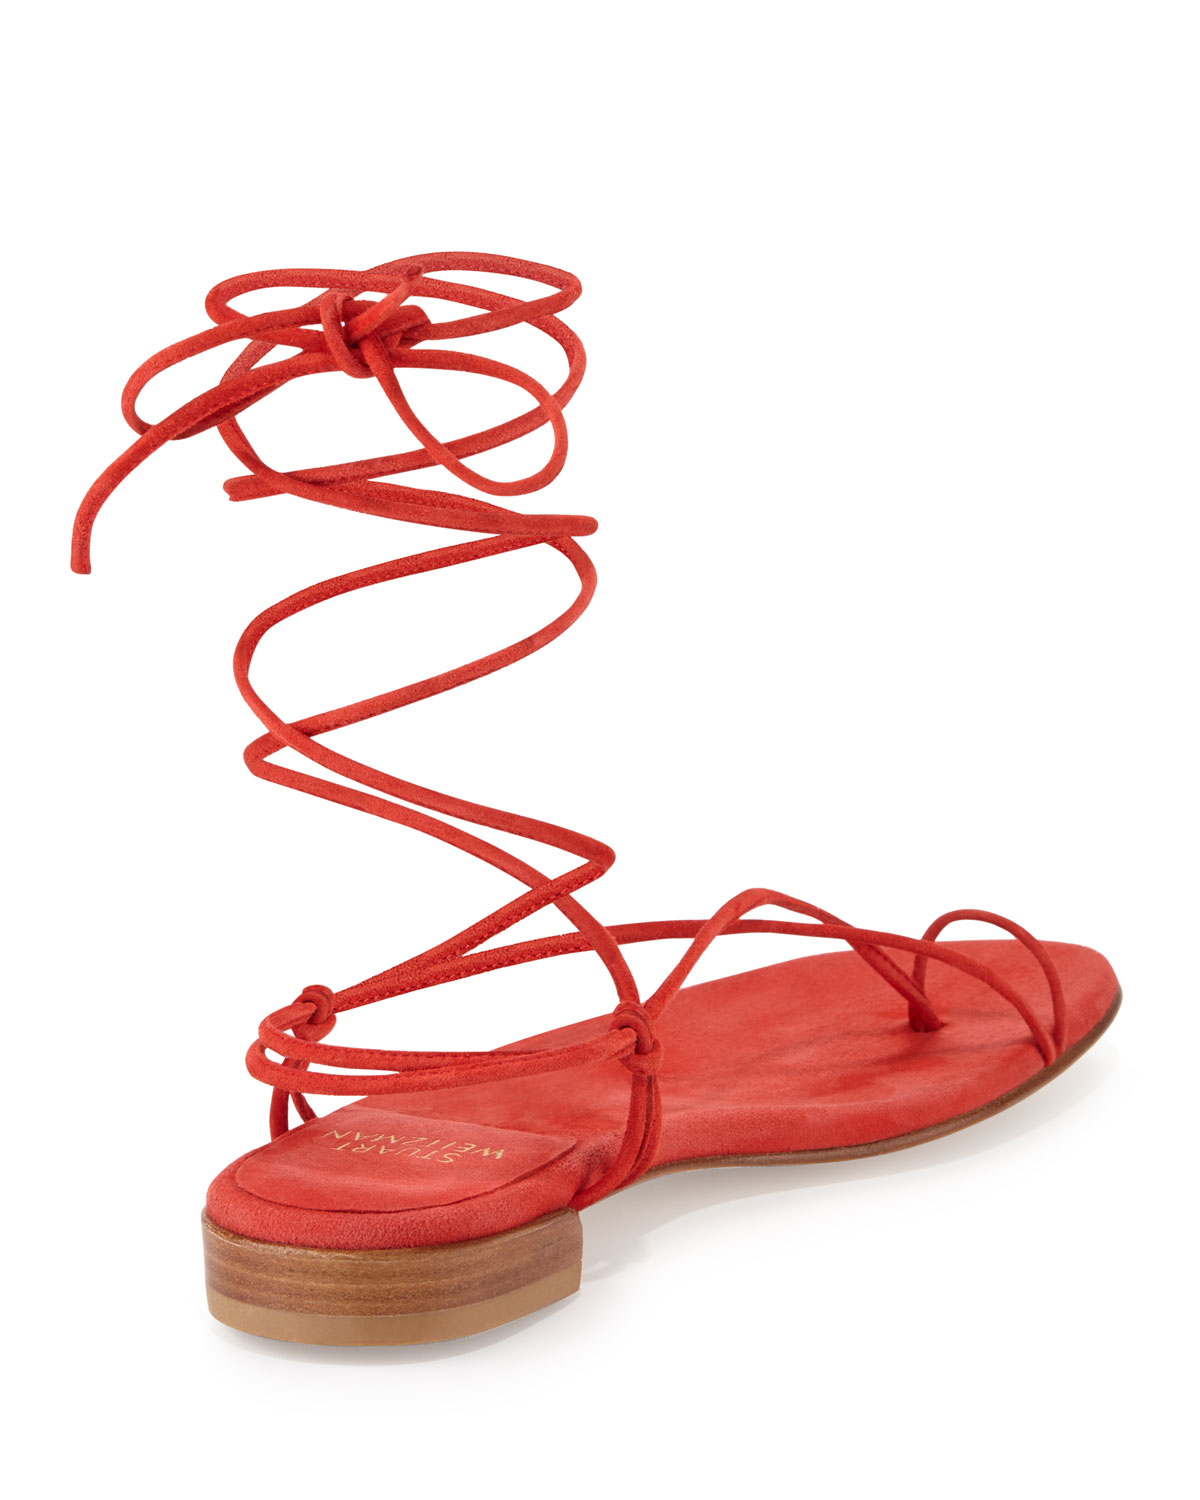 Red Lace-up Sandals | CraftySandals.com